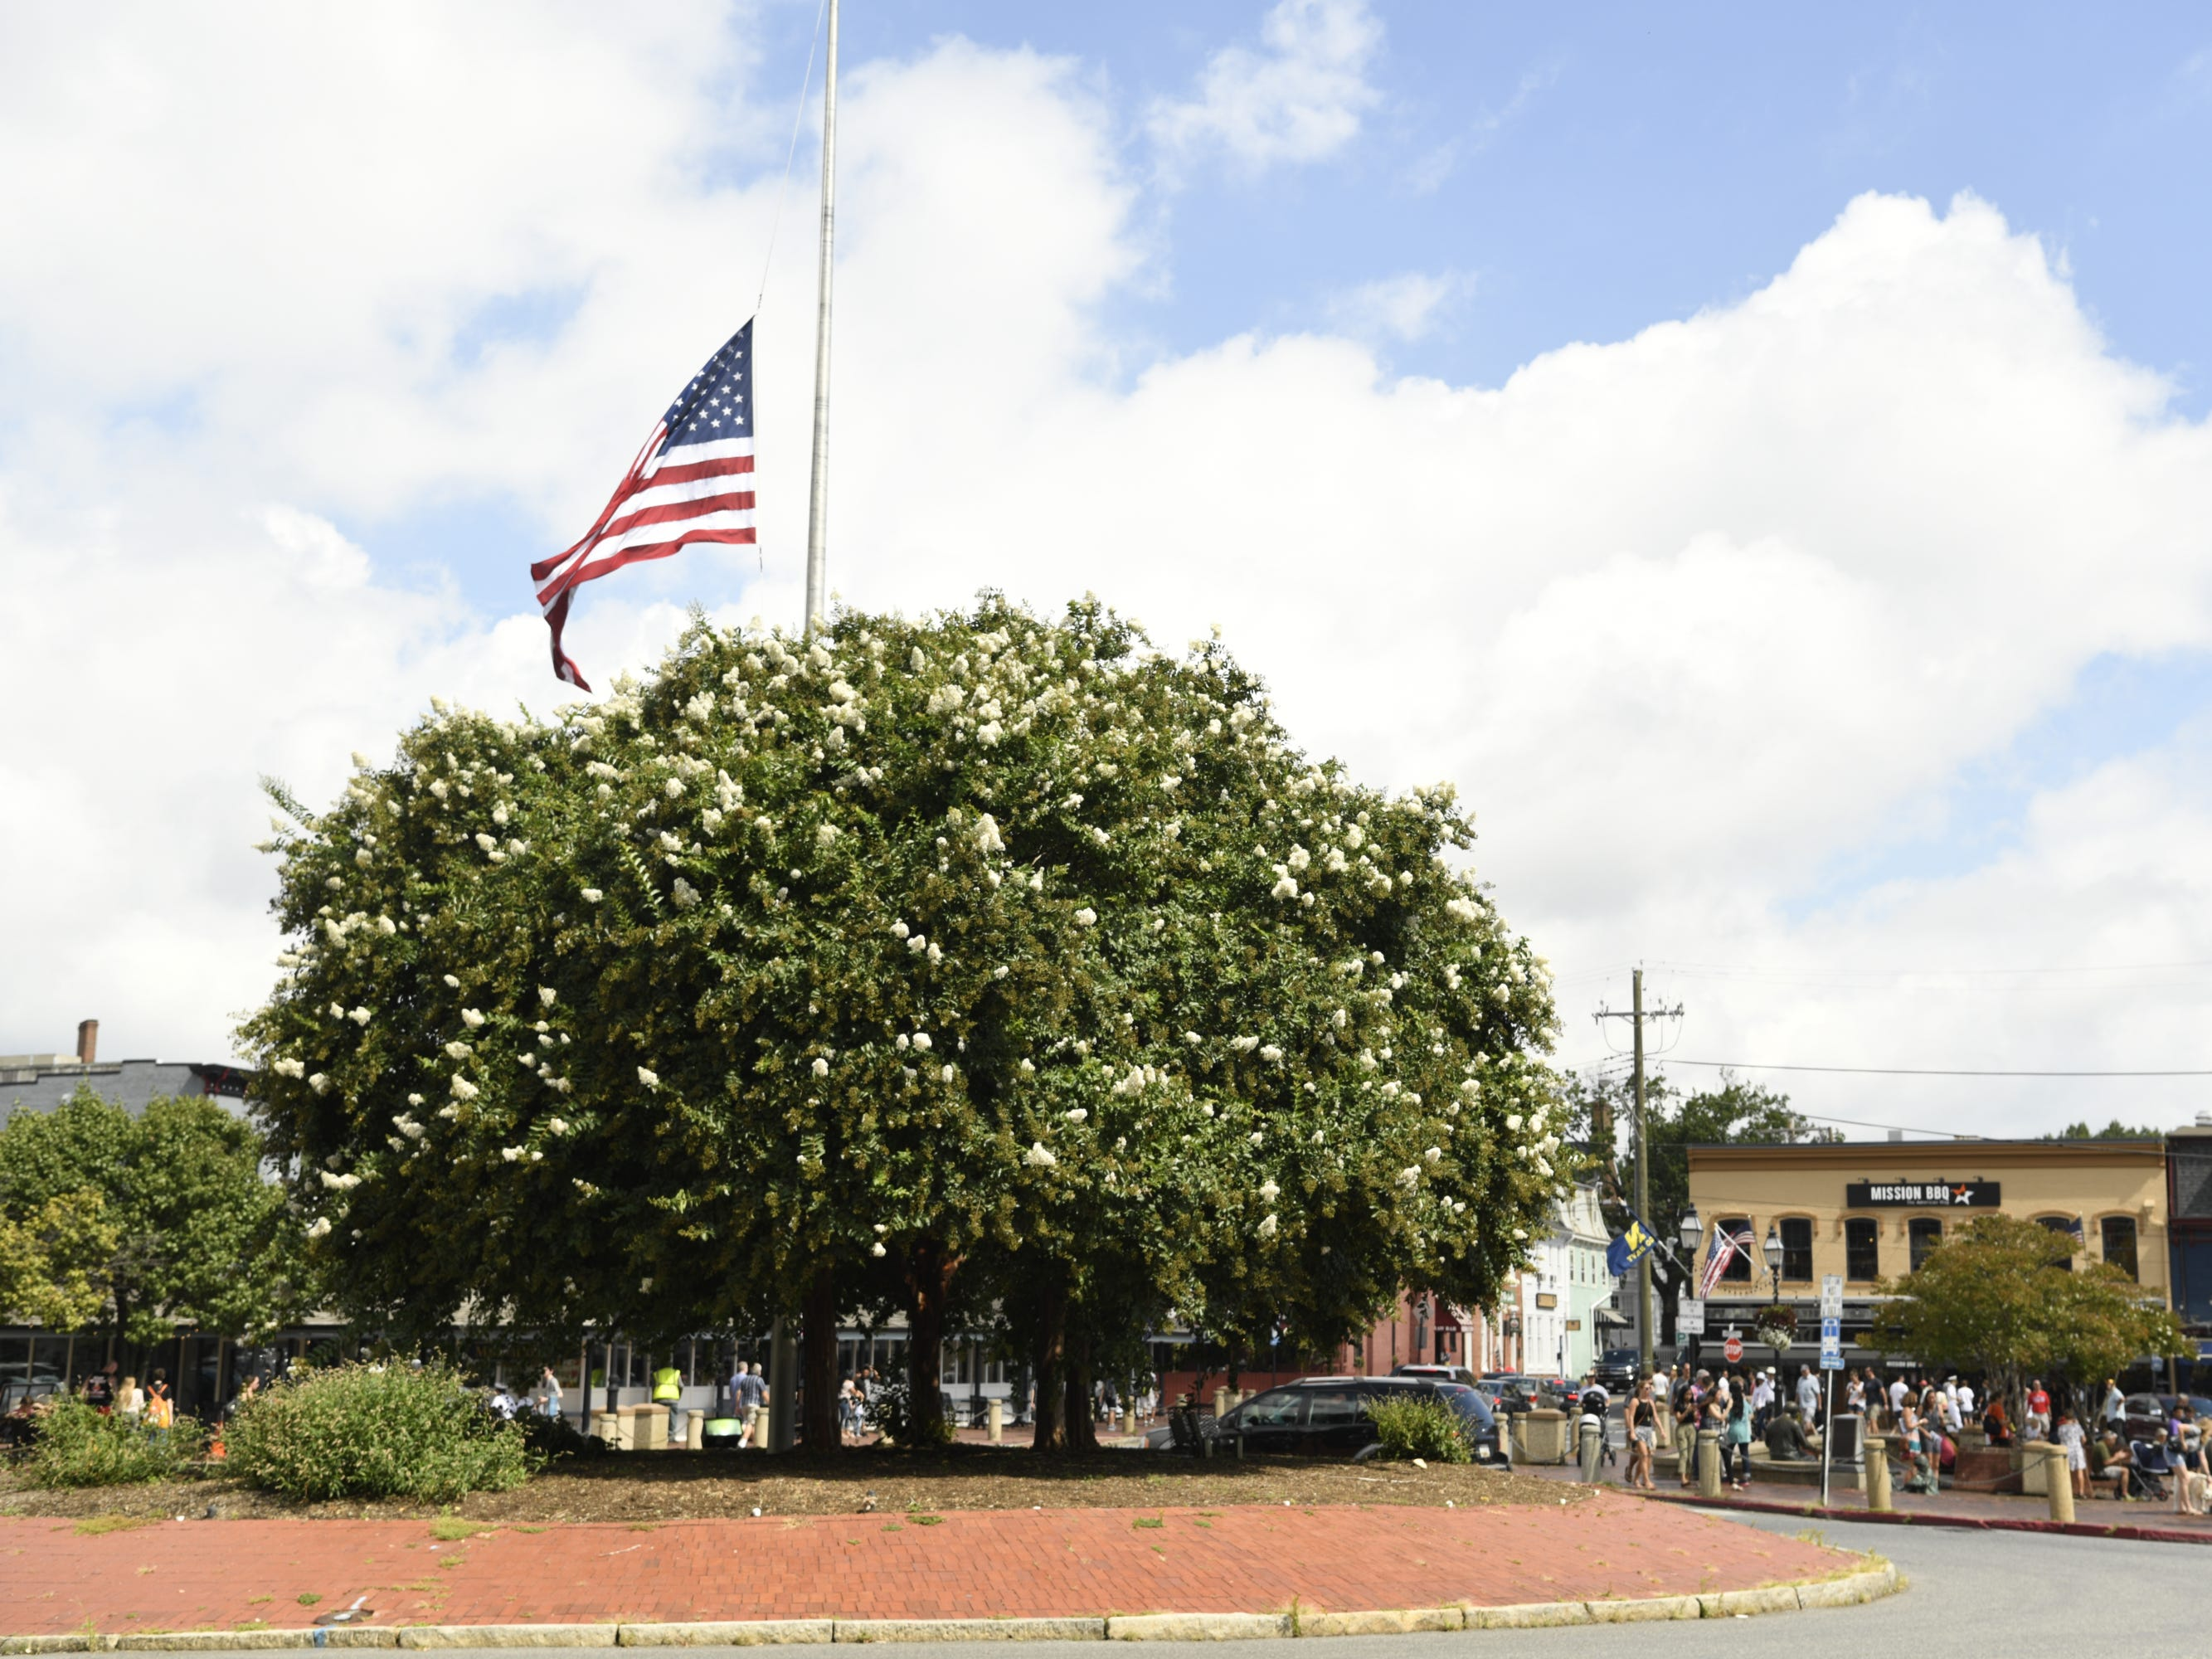 The flag in downtown Annapolis flies at half staff the morning that John McCain is to be laid to rest at the U.S. Naval Academy.